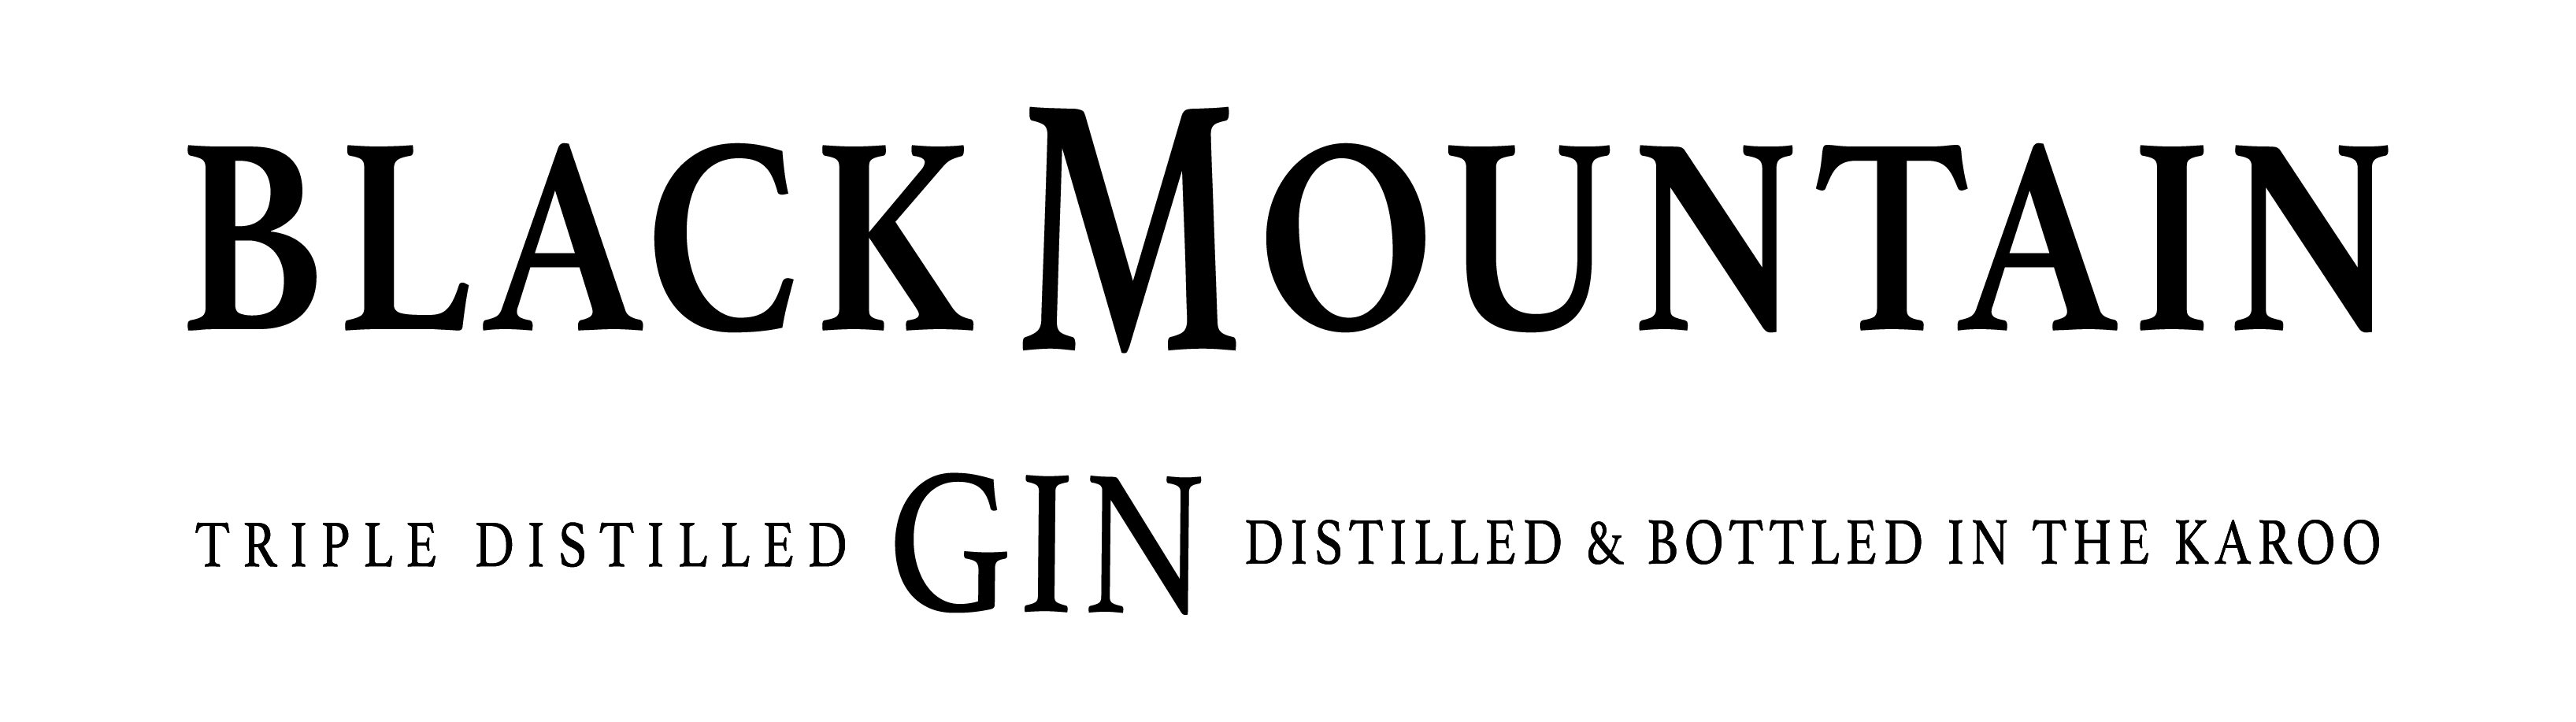 Black Mountain Gin